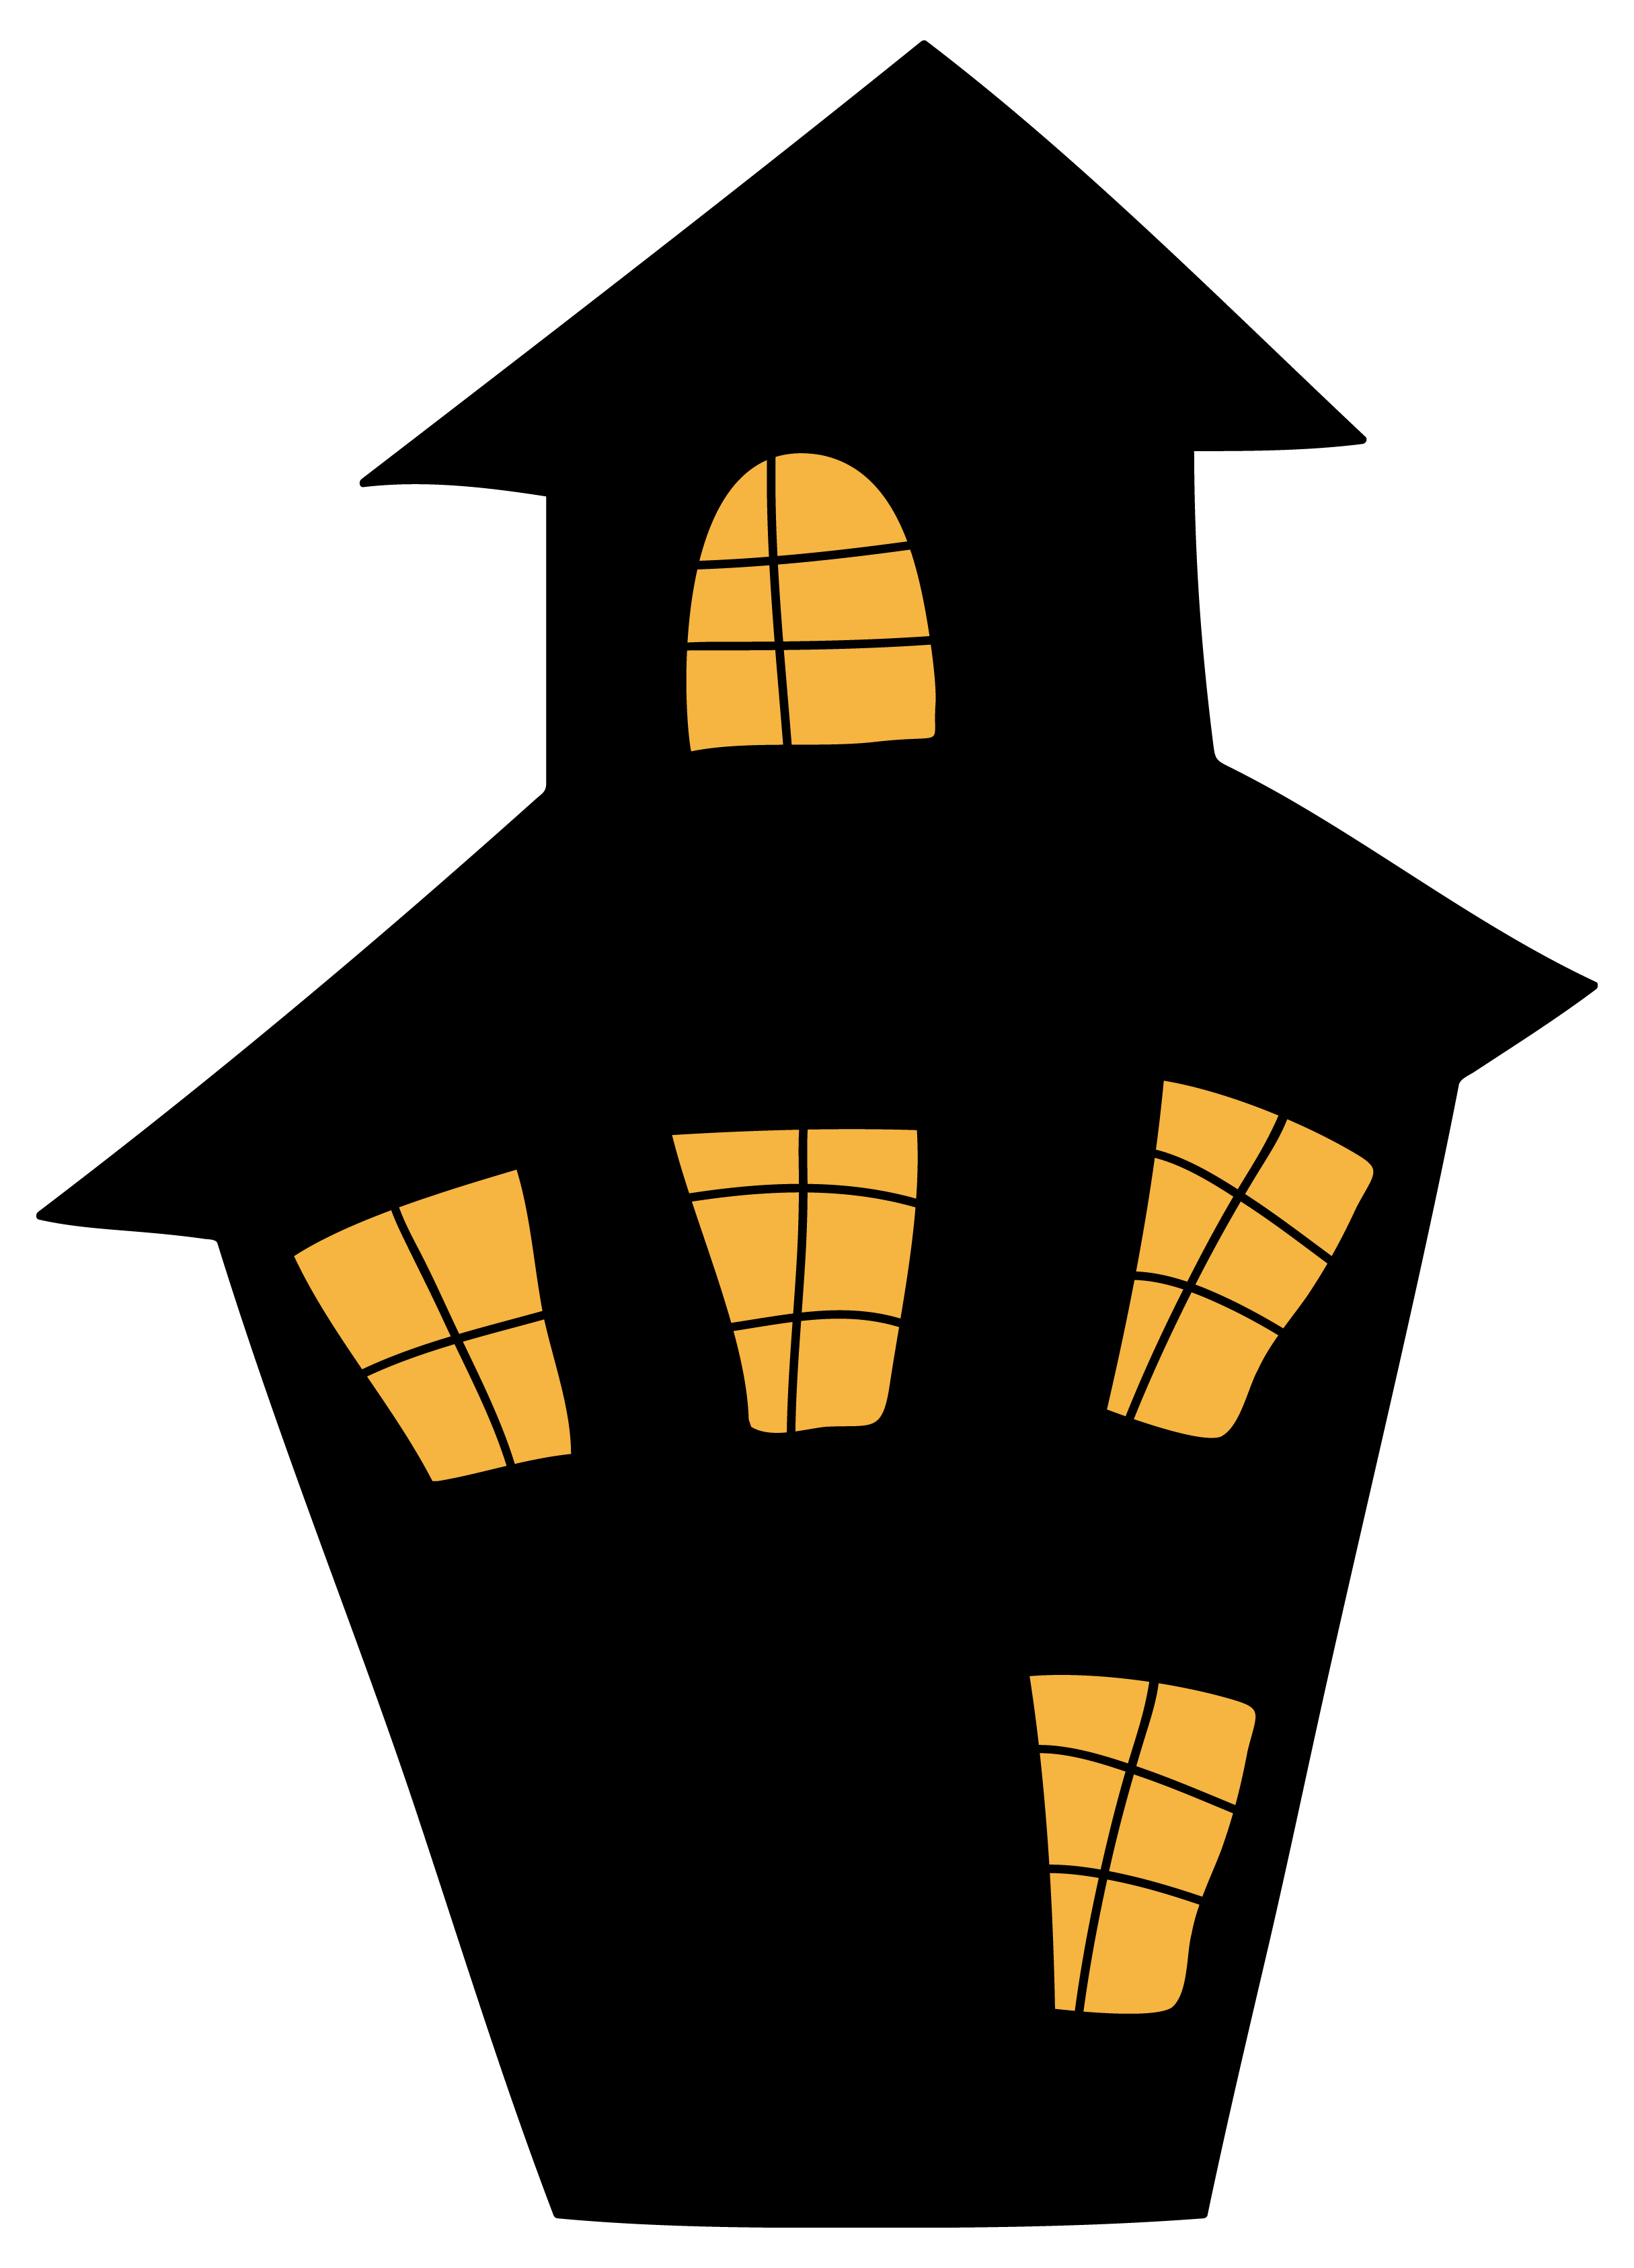 Haunted house clipart png picture transparent stock House Clipart Png. House Clipart Png - Deltasport.co picture transparent stock